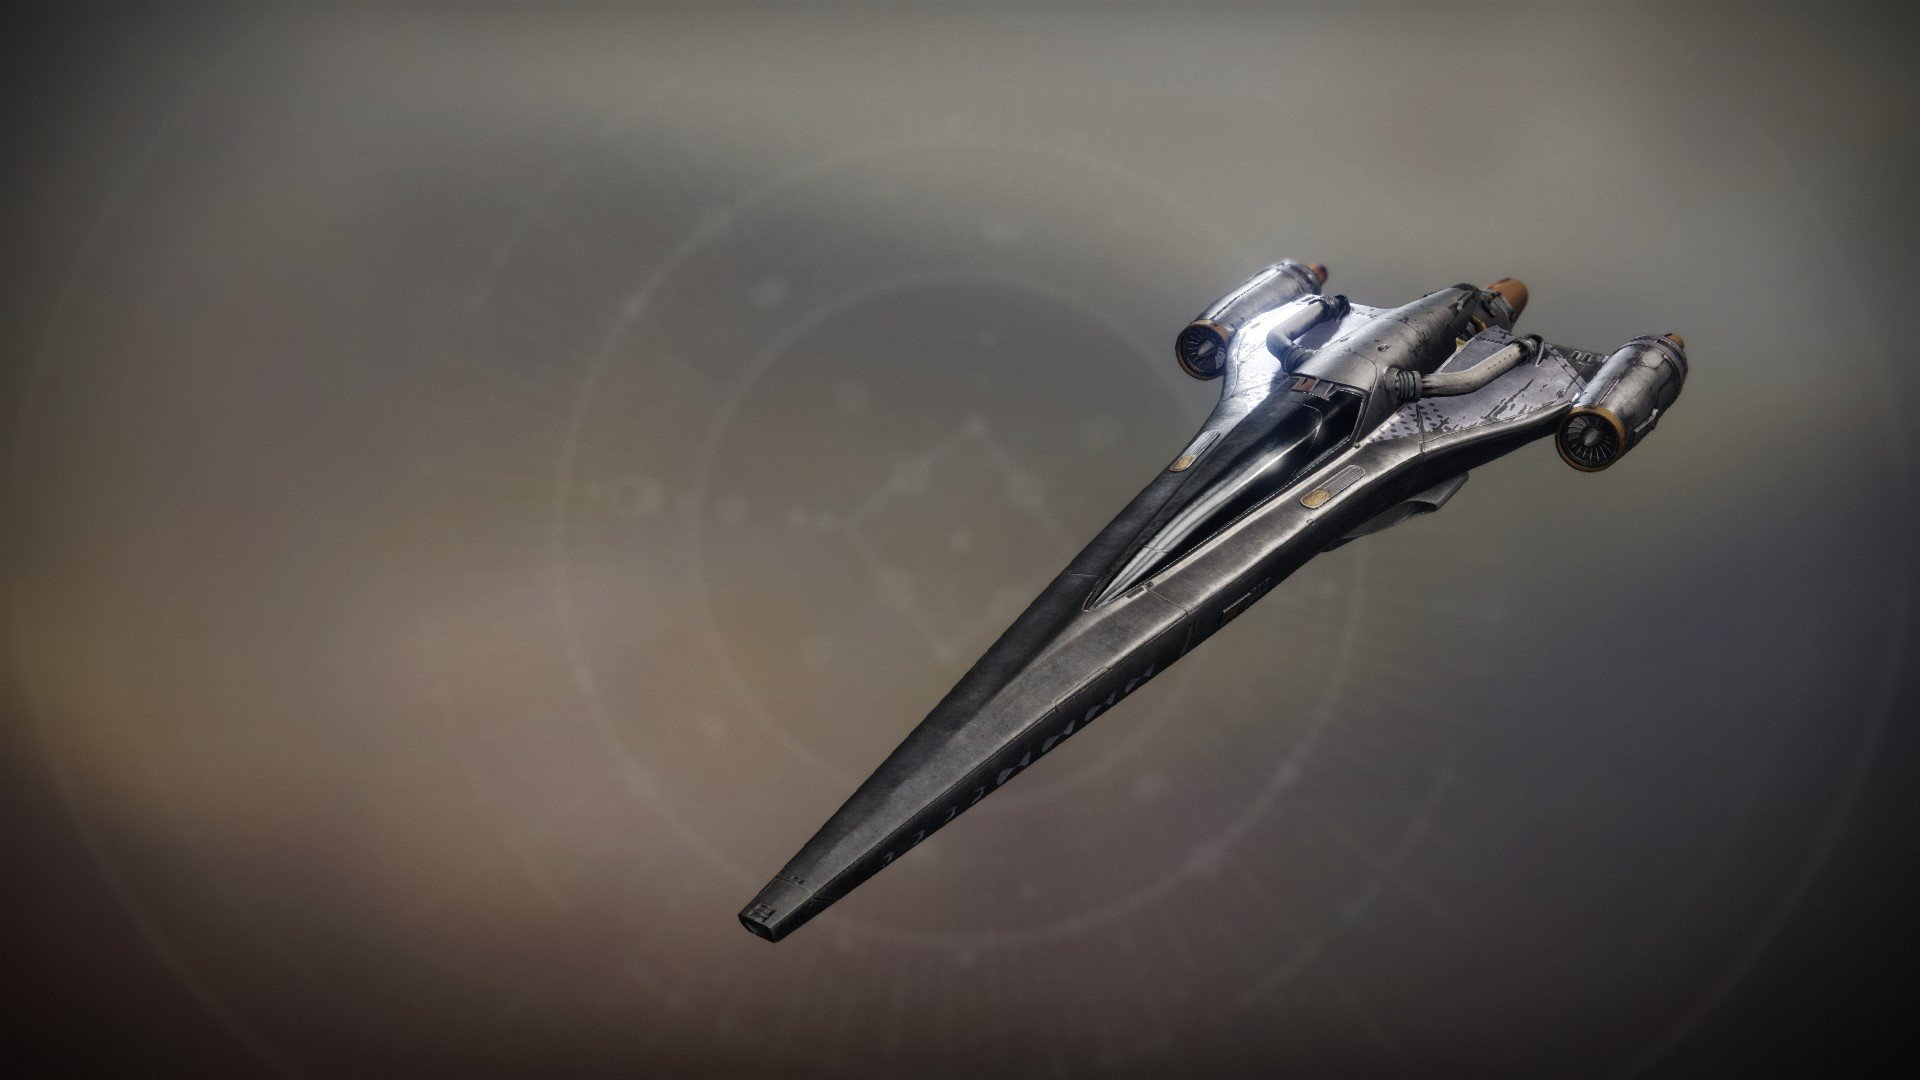 An in-game render of the Black Peregrine.